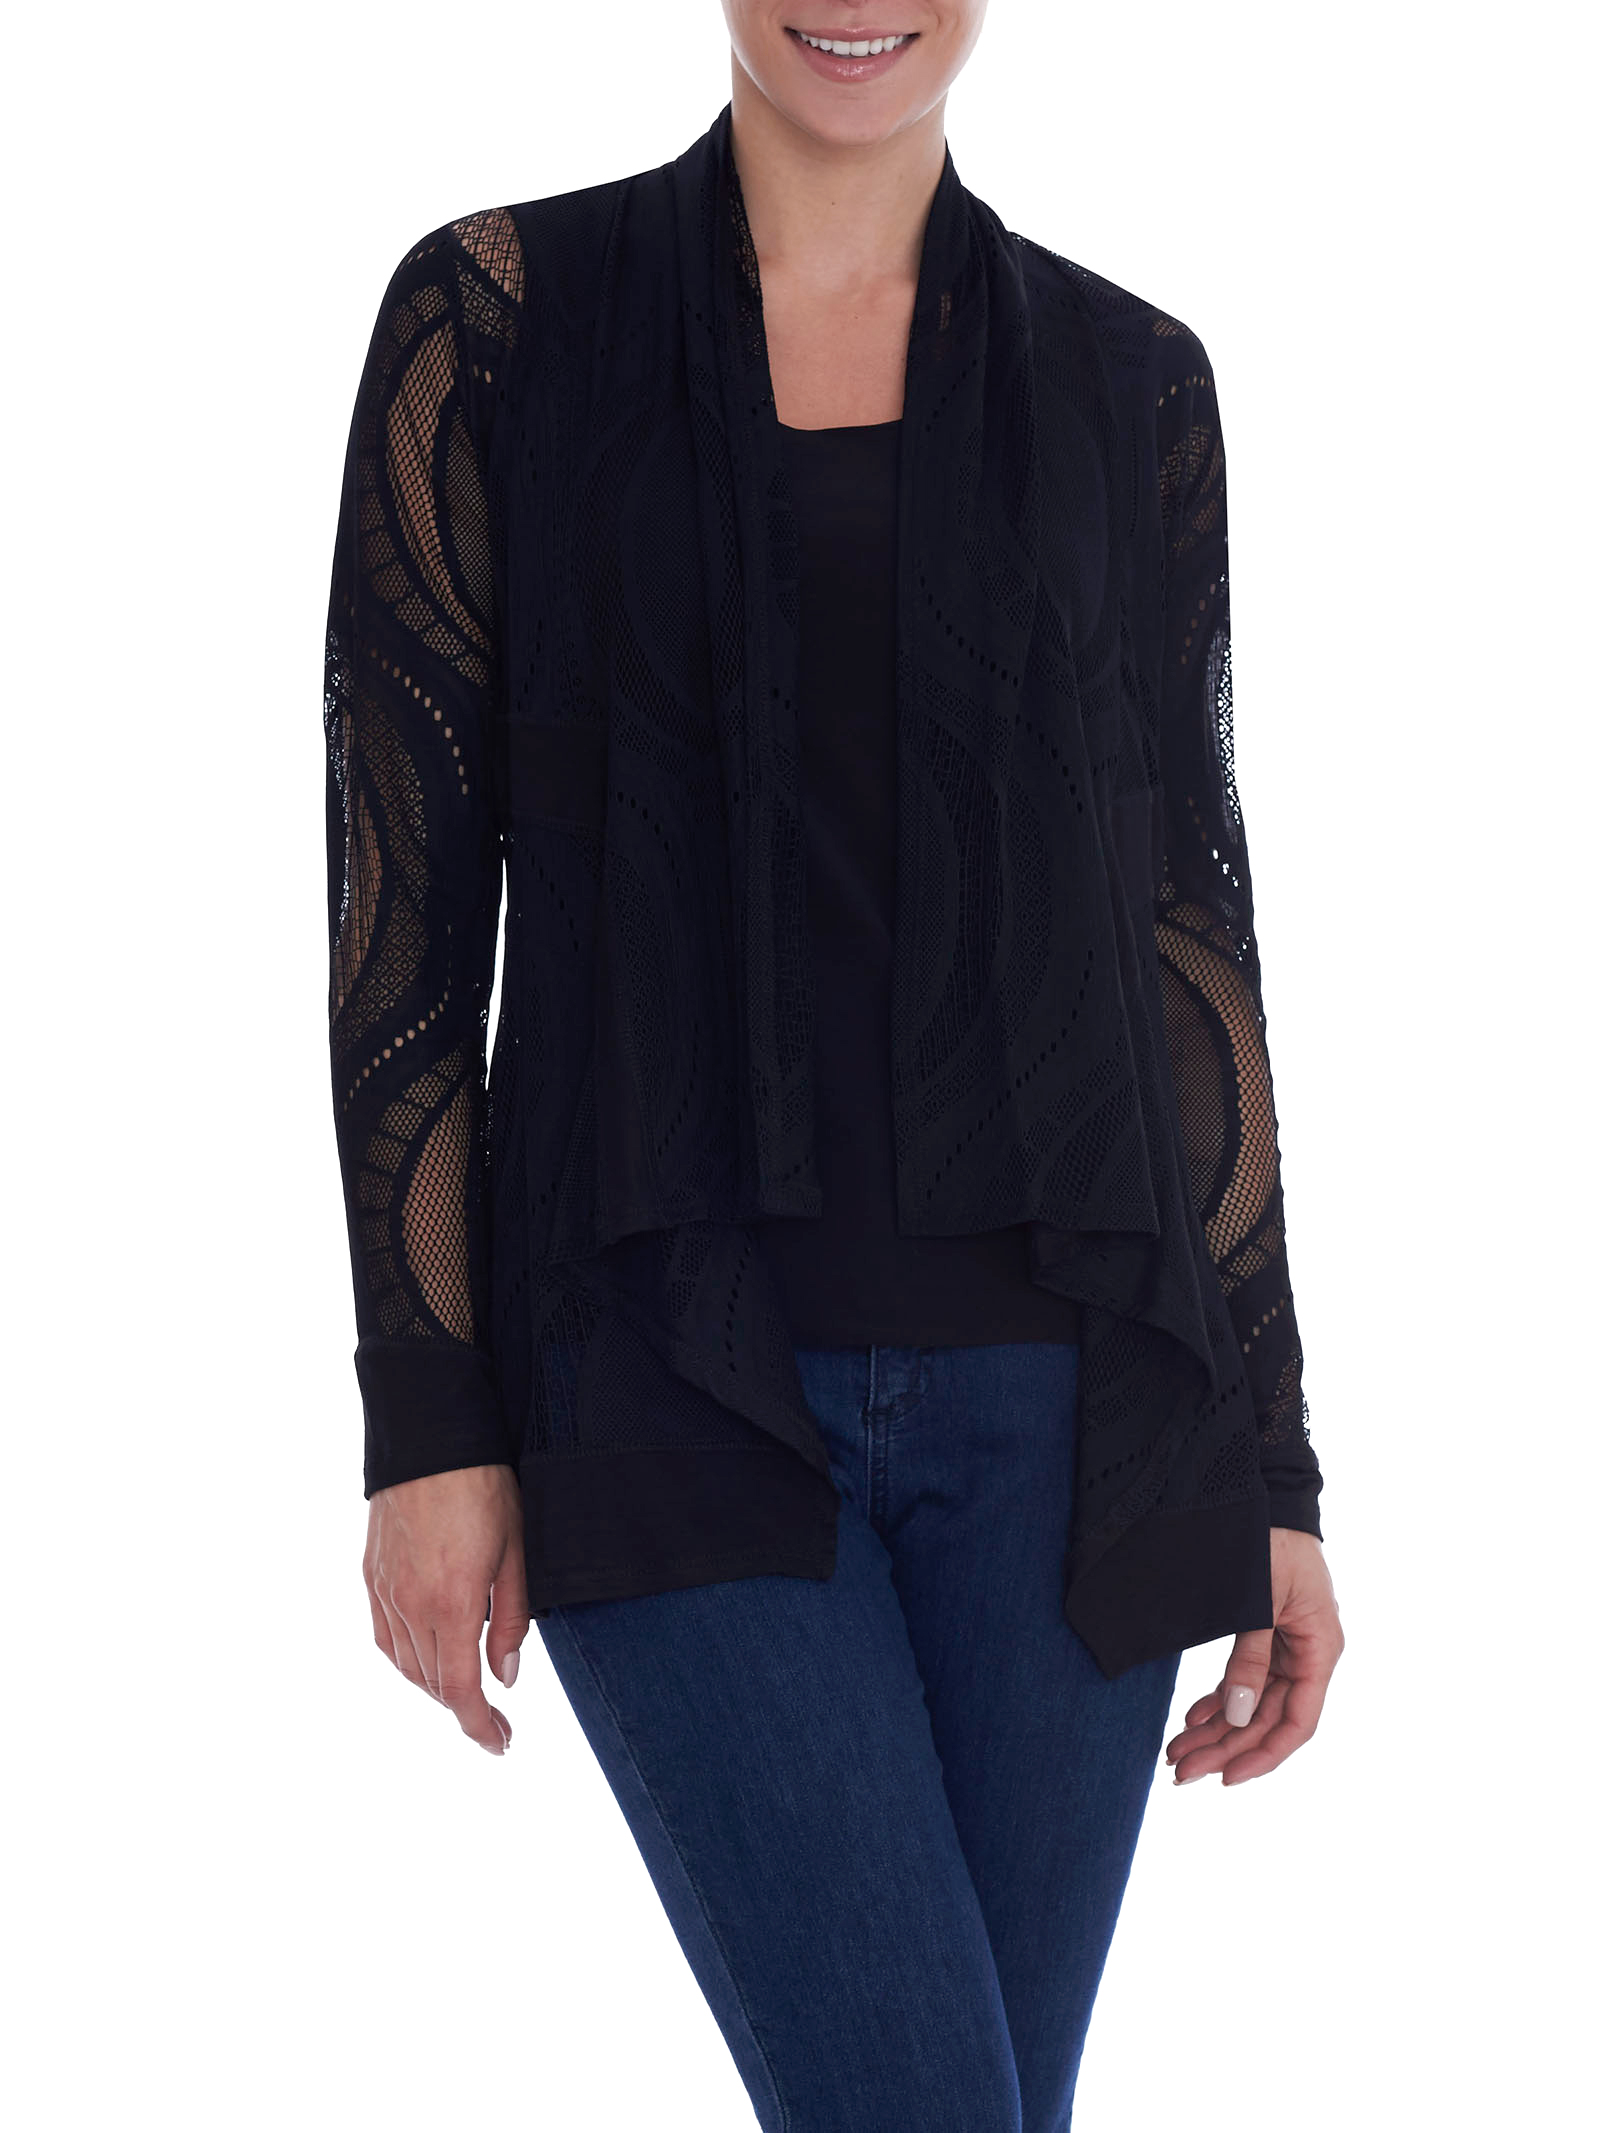 Long Sleeve Crochet Cardigan, Black, hi-res